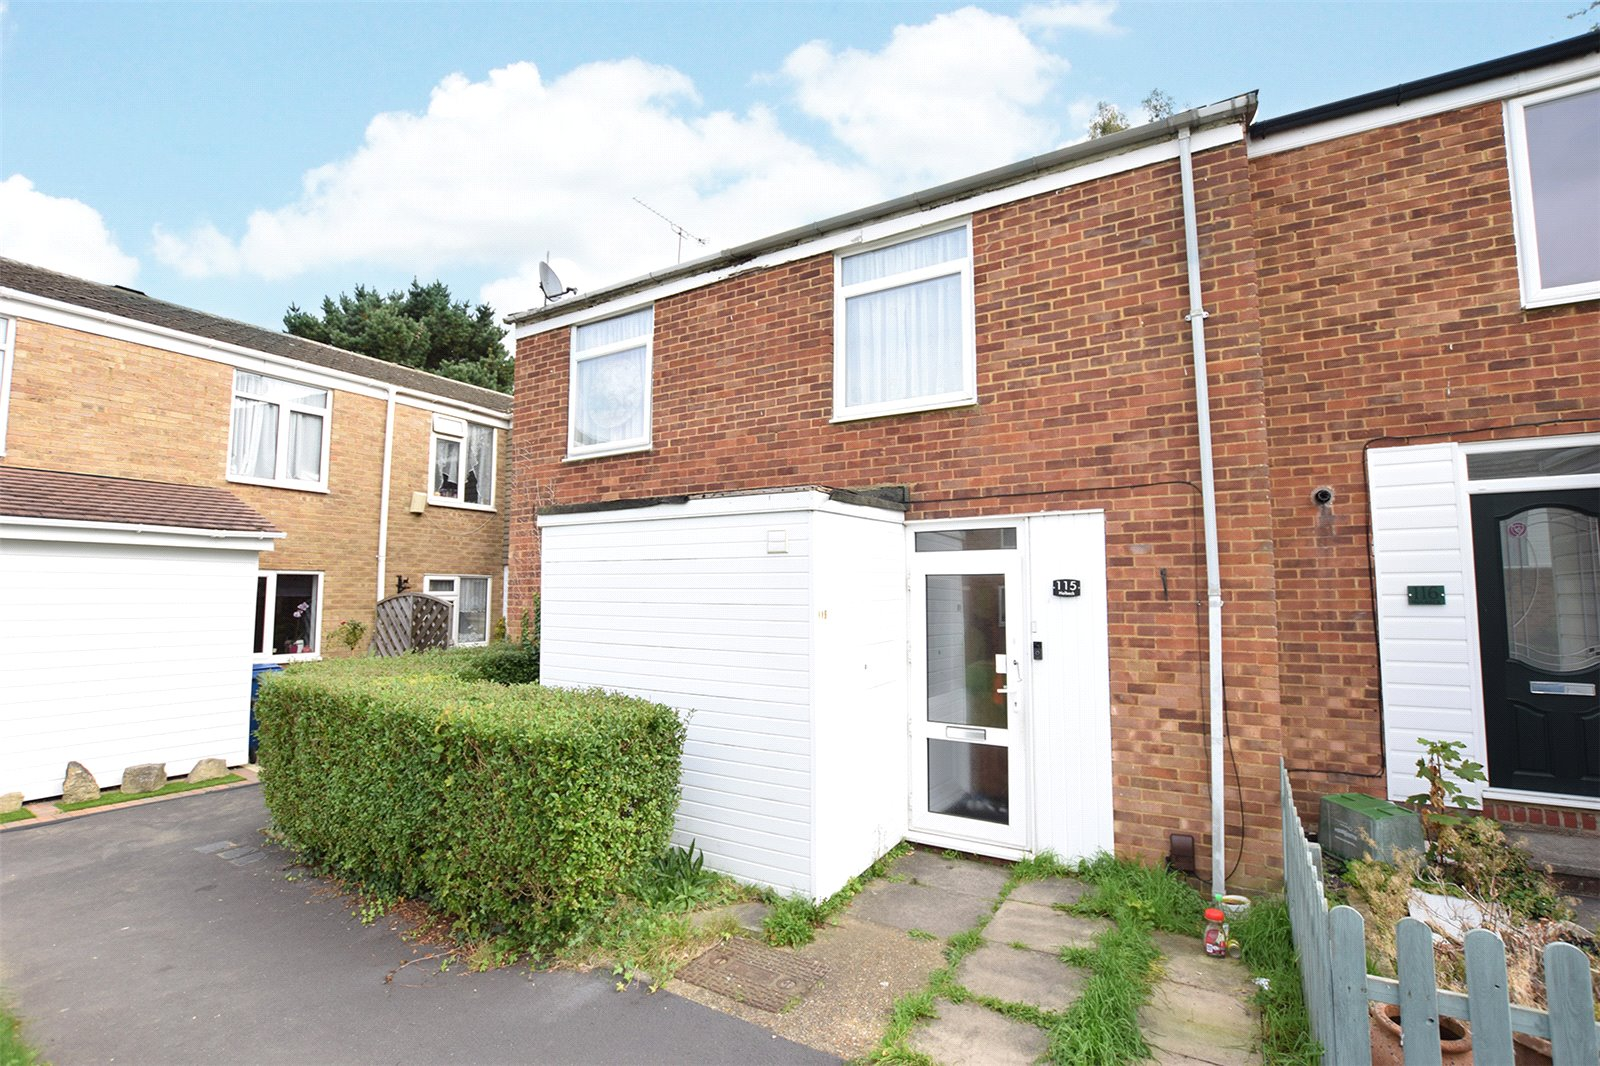 4 Bedrooms End Of Terrace House for sale in Holbeck, Bracknell, Berkshire, RG12